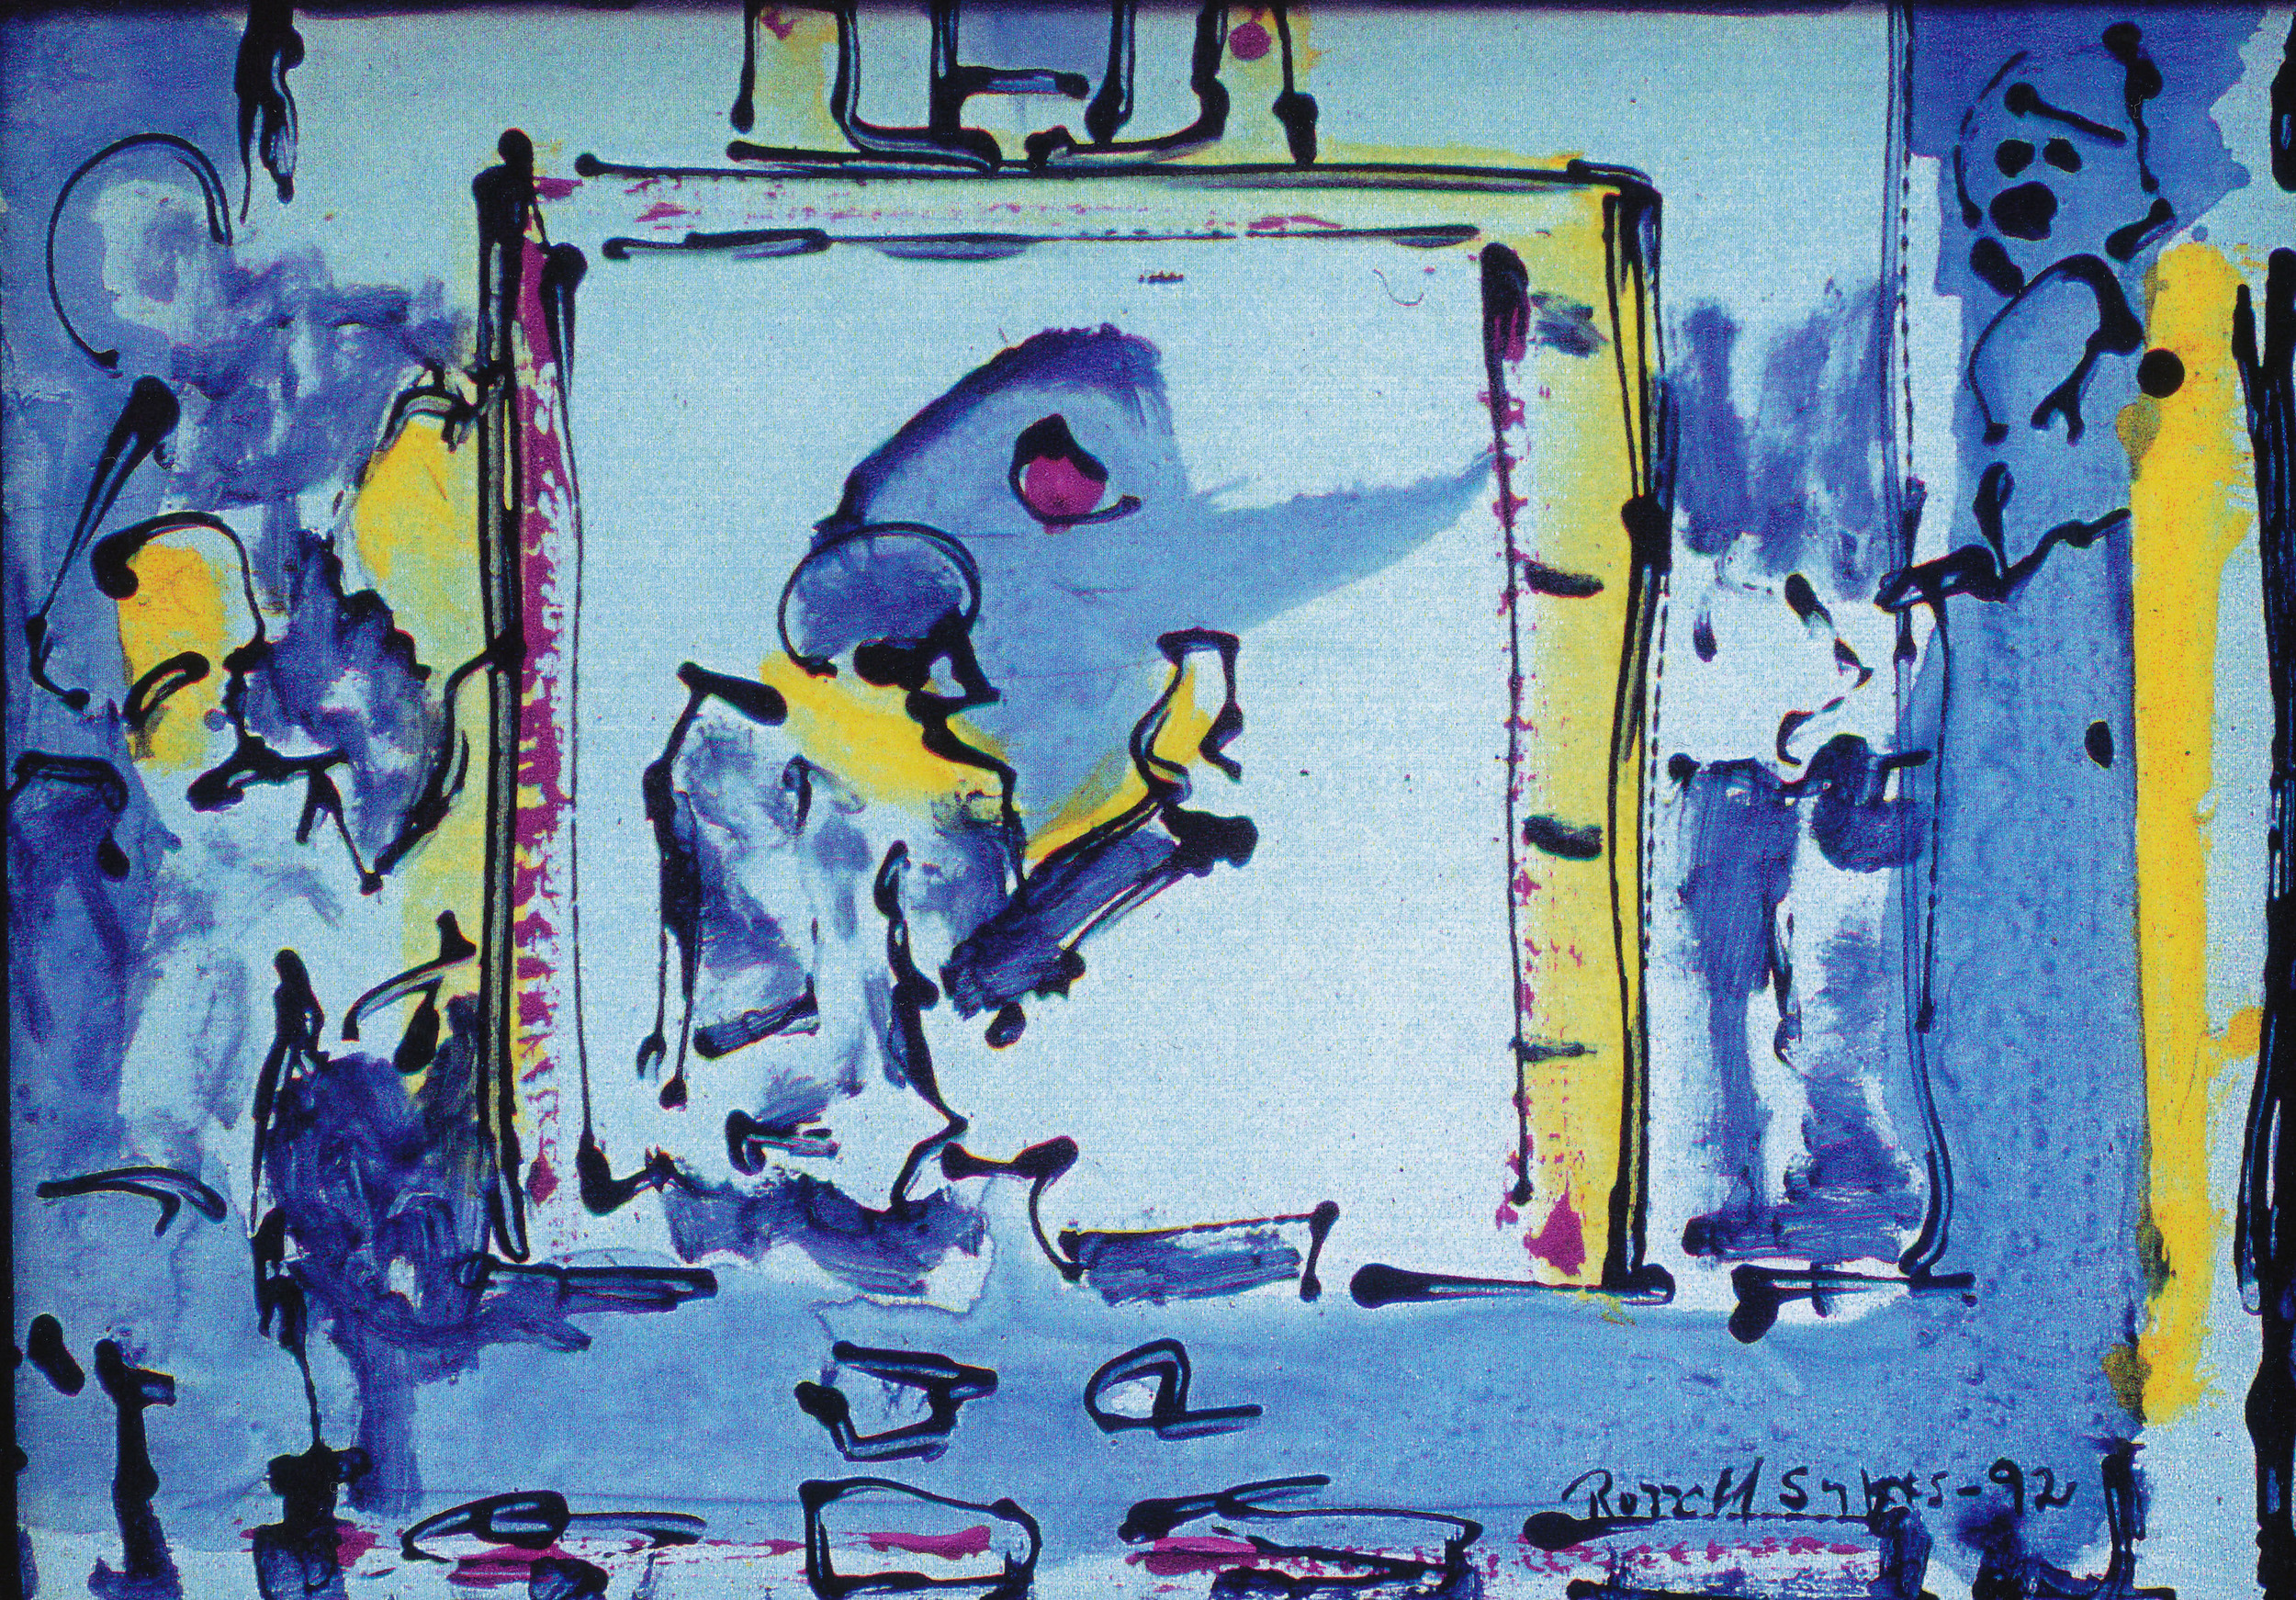 The Studio, Image of a Painter During the Riots,1992